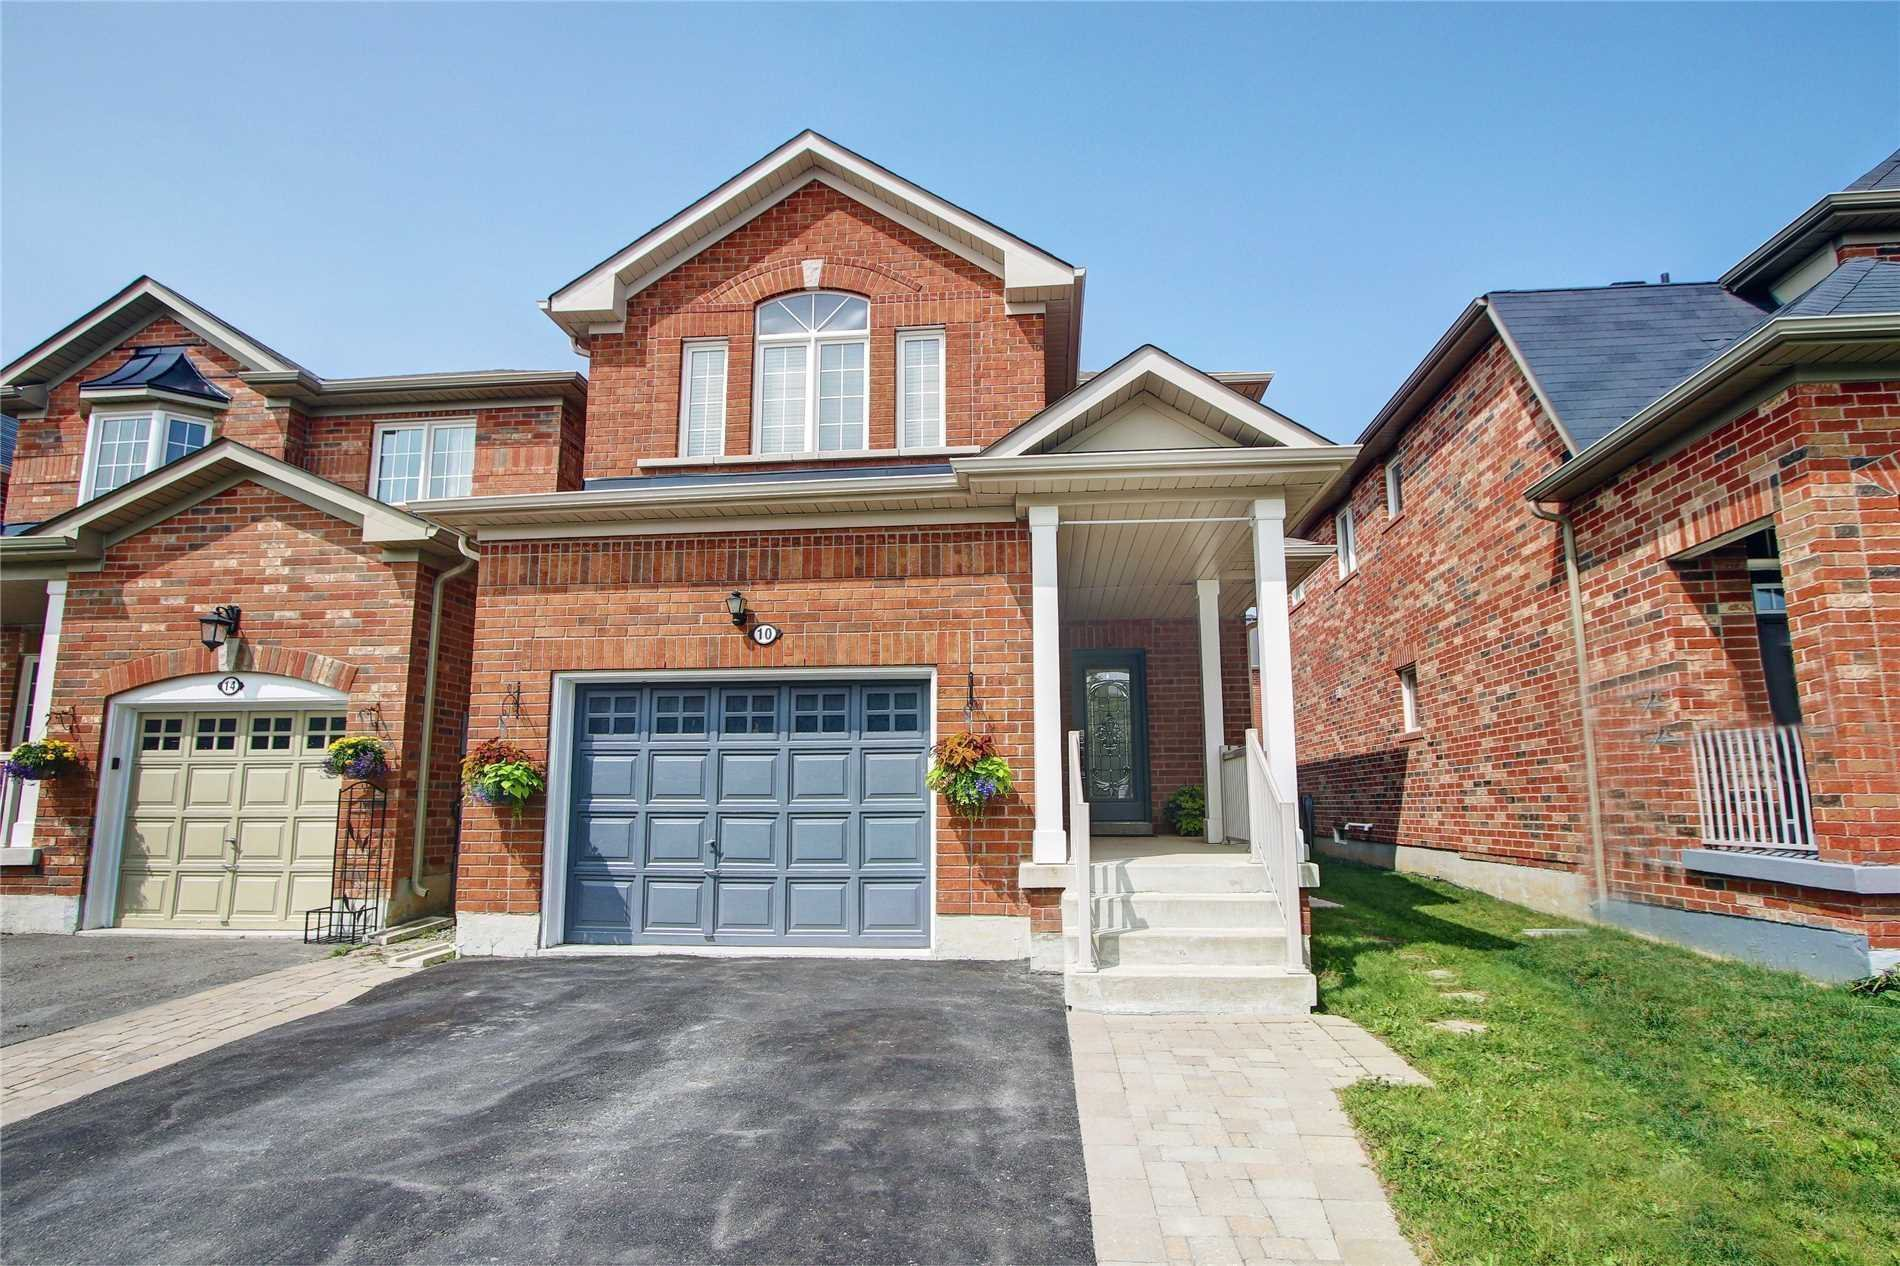 Main Photo: 10 Coronet Street in Whitchurch-Stouffville: Stouffville House (2-Storey) for sale : MLS®# N4531511